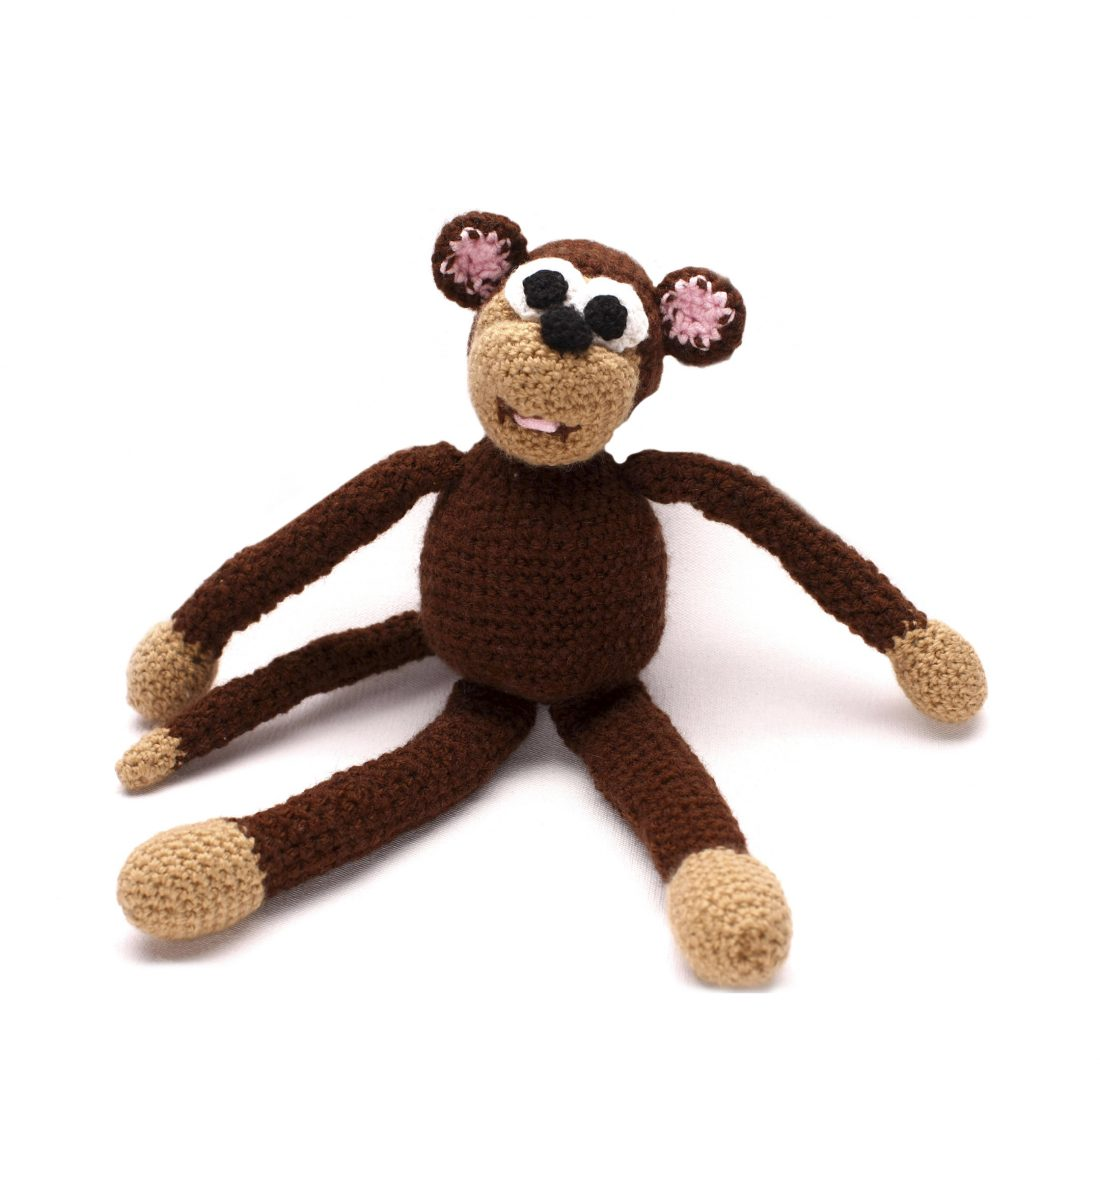 Cheeky Monkey Knitted Toy 1043